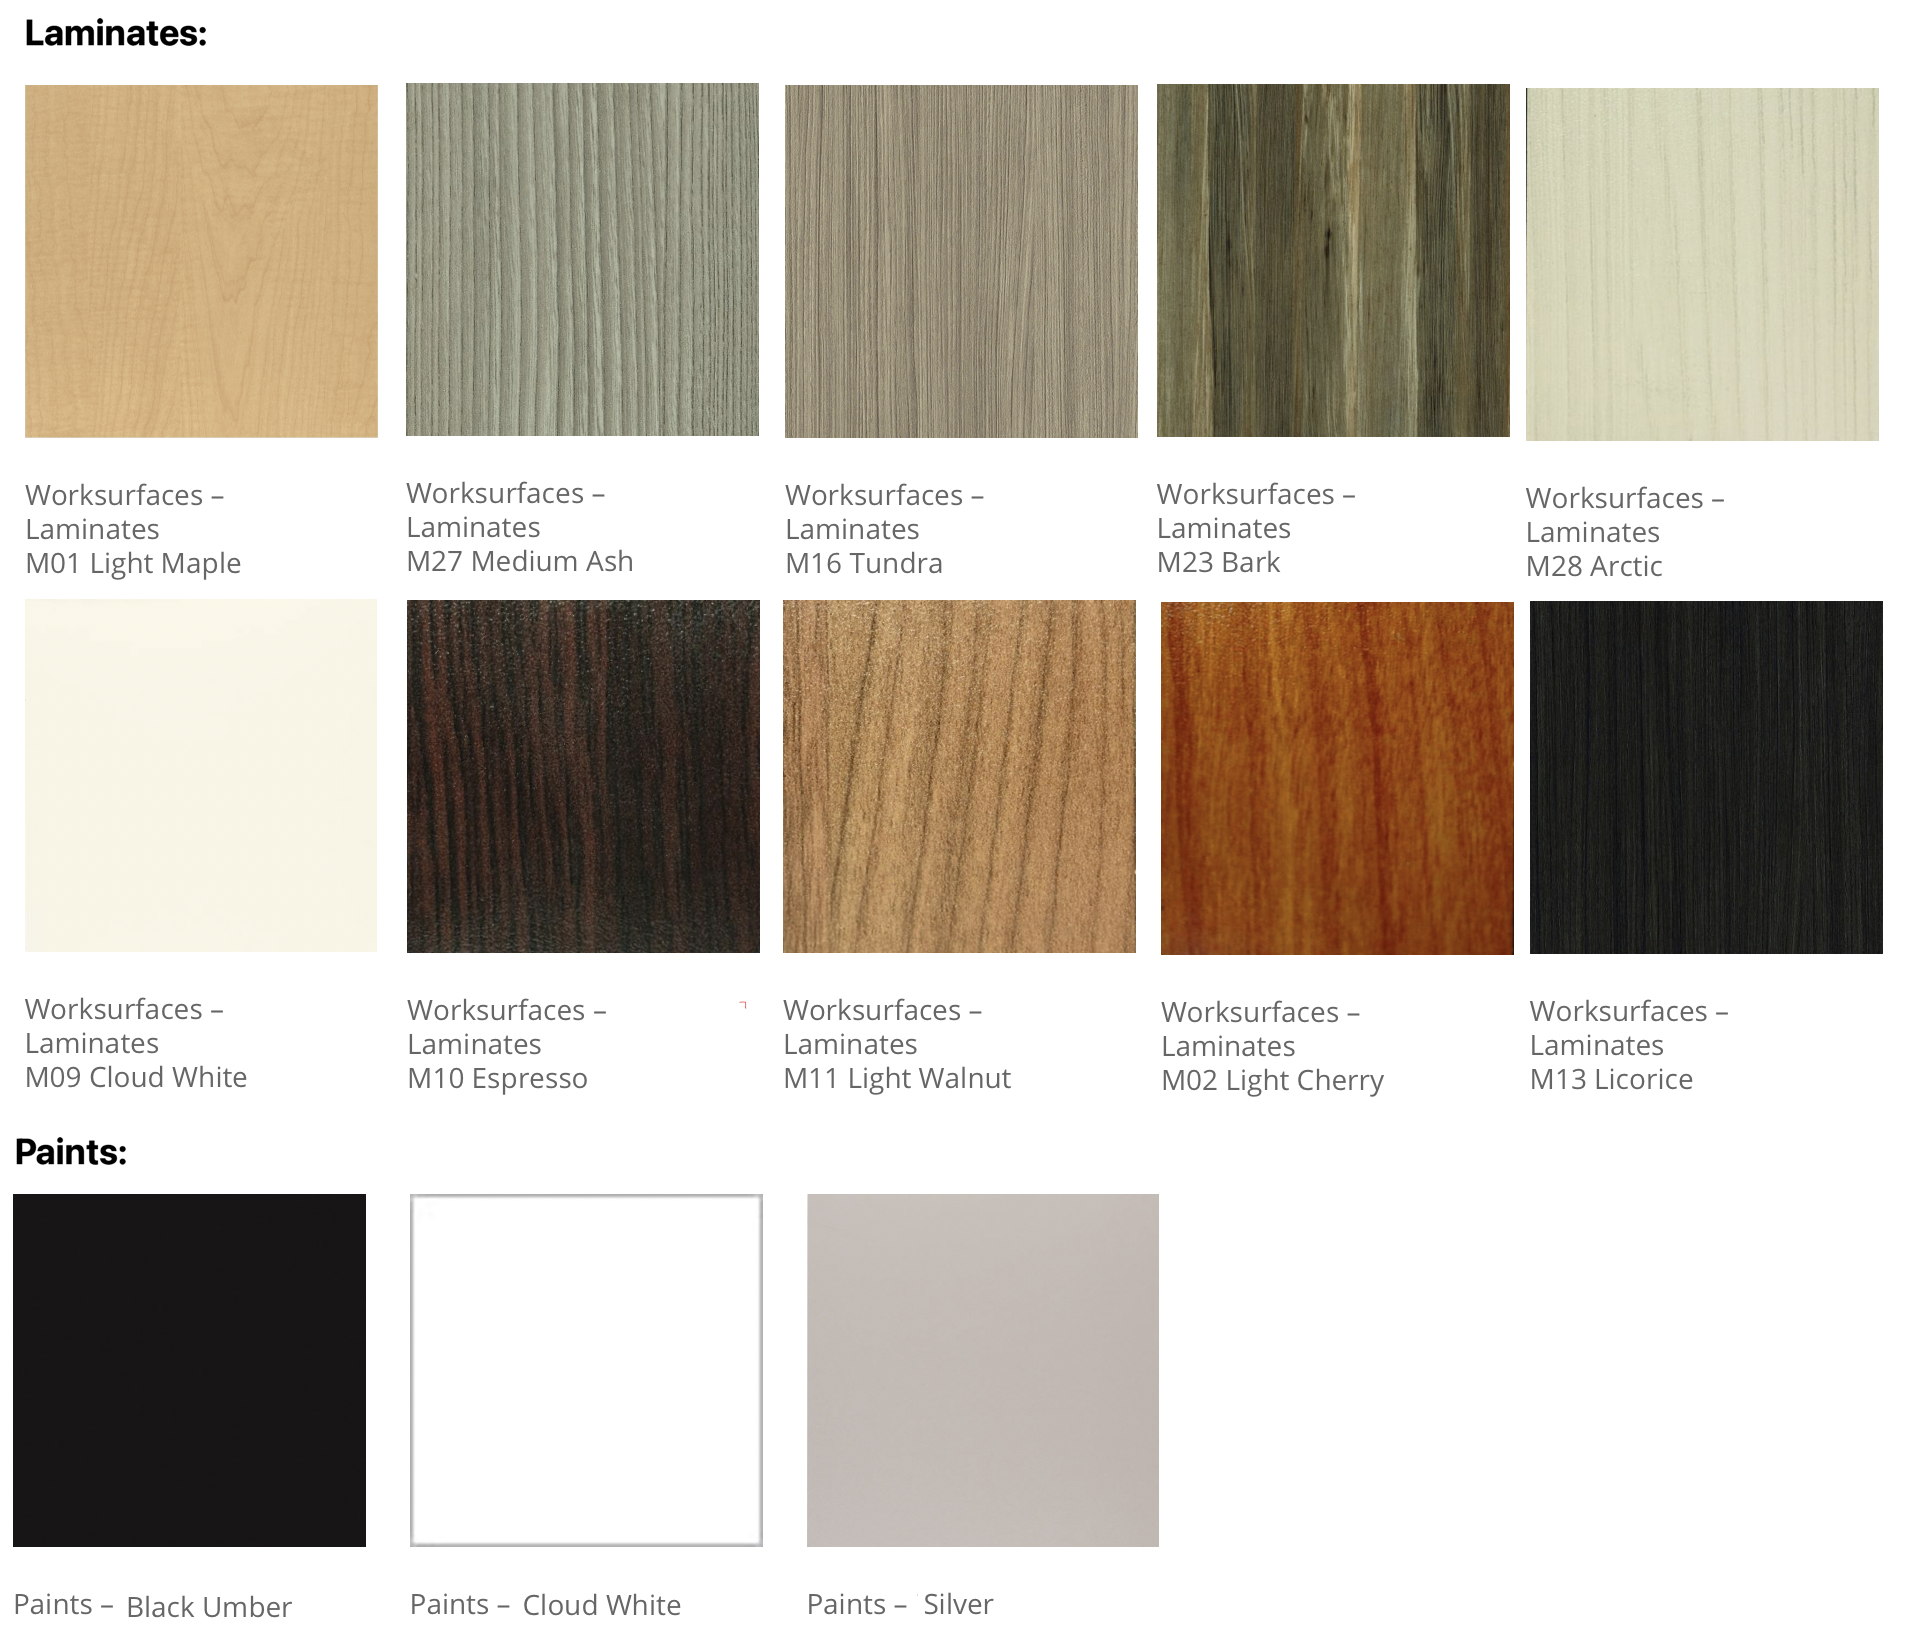 friant upholsteries and paint finishes